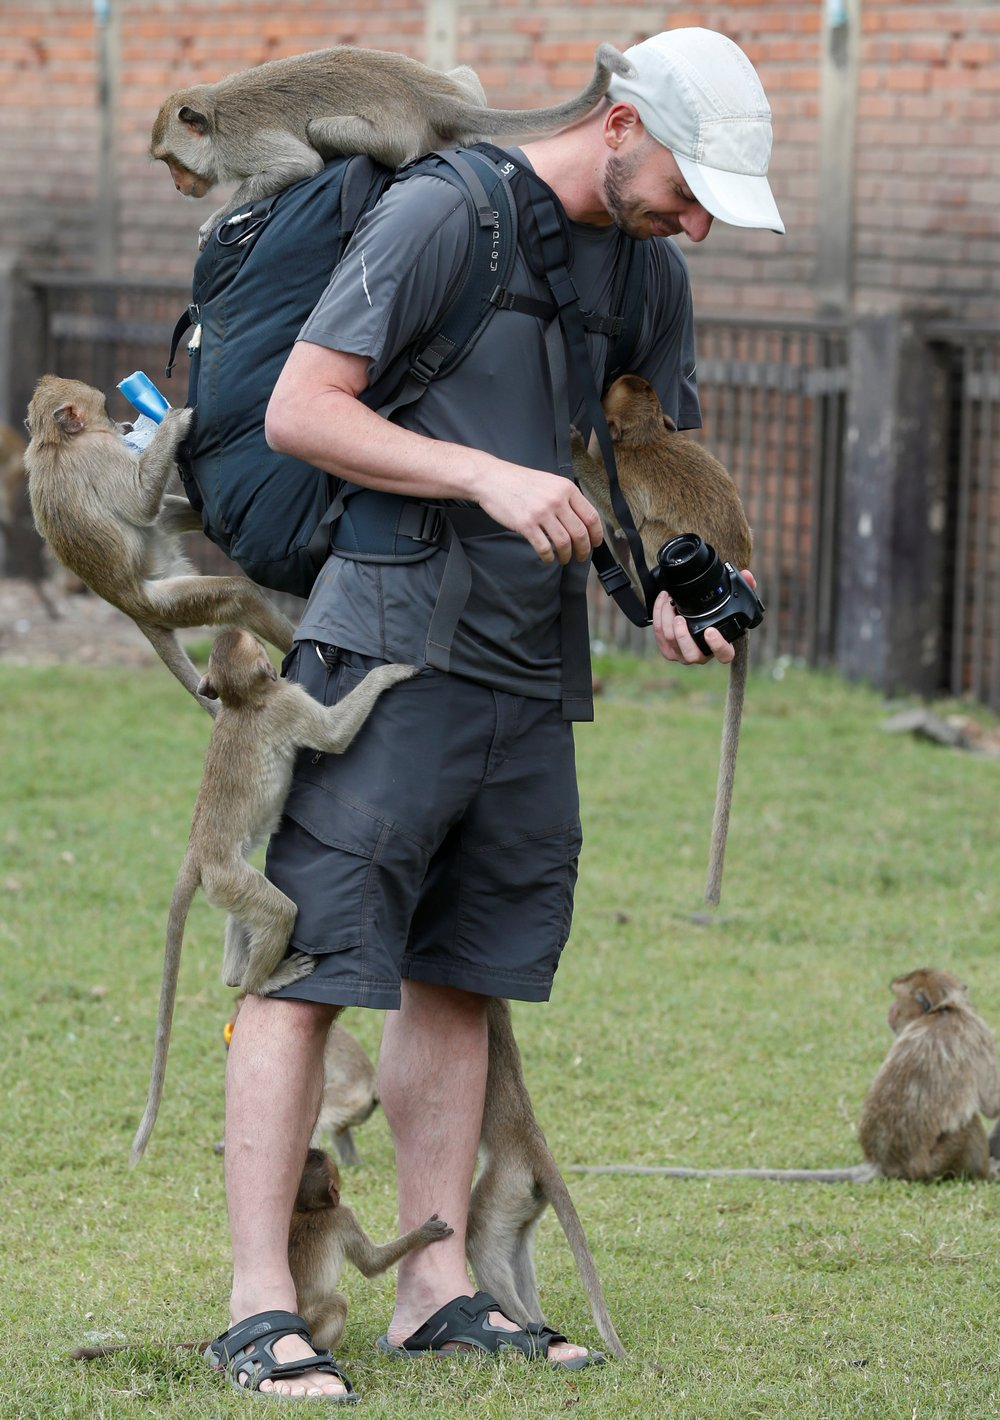 Monkeys climb on a tourist during the annual Monkey Buffet Festival at the Phra Prang Sam Yot temple in Lopburi province